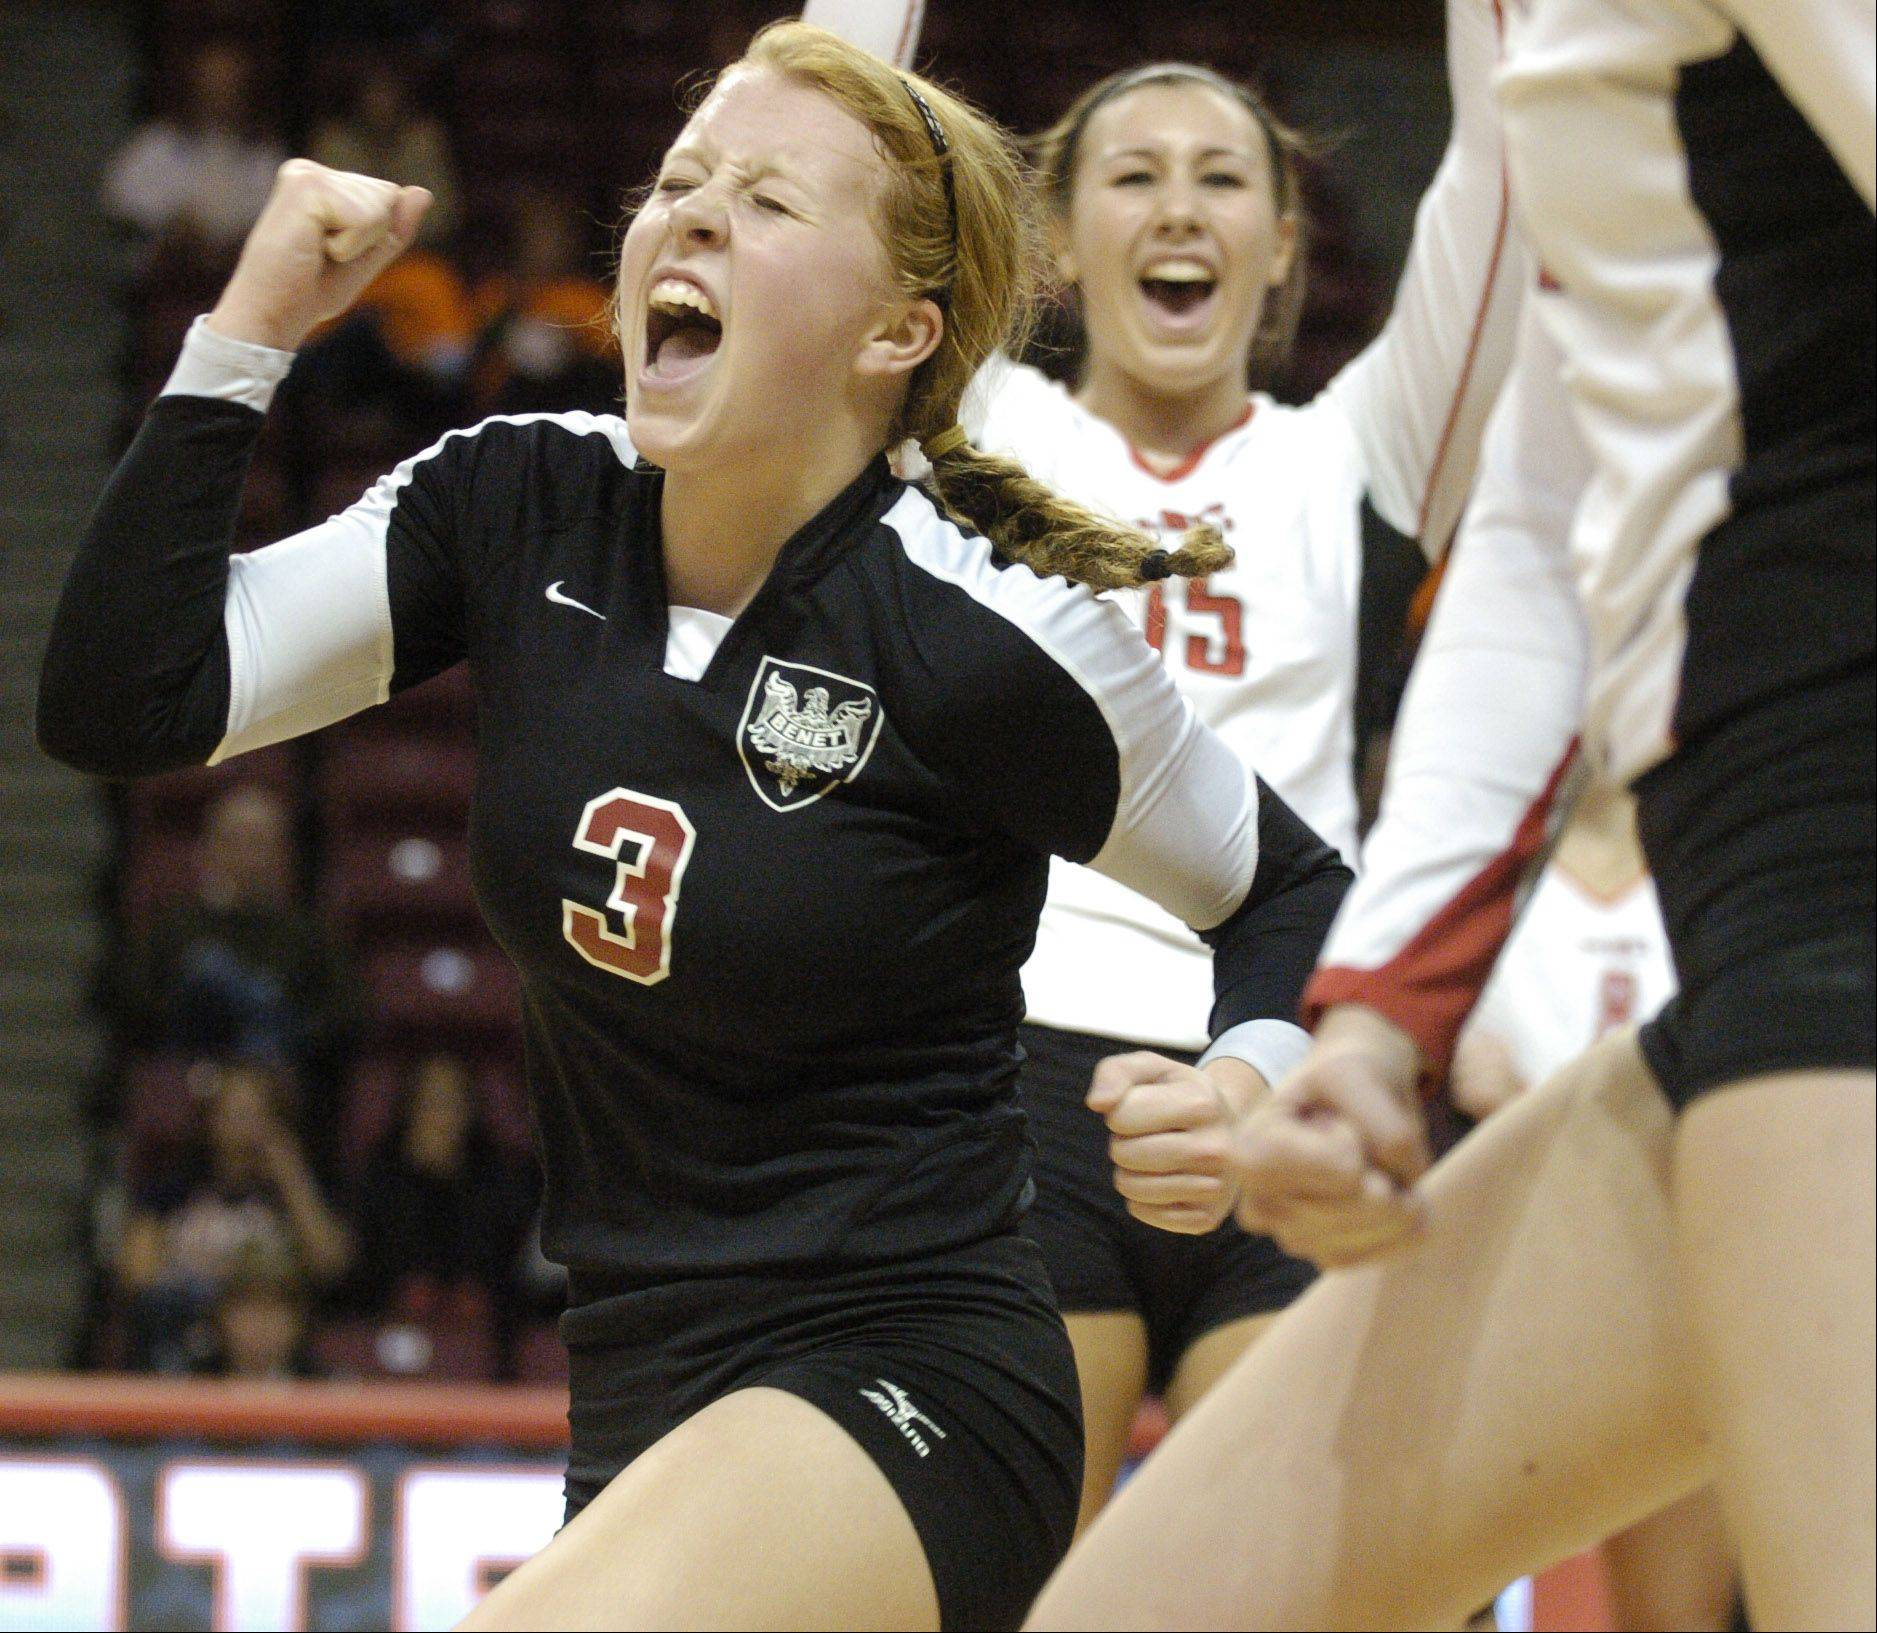 Benet's Sheila Doyle reacts to a point against New Trier during Saturday's Class 4A championship volleyball game at Redbird Arena at Illinois State University.